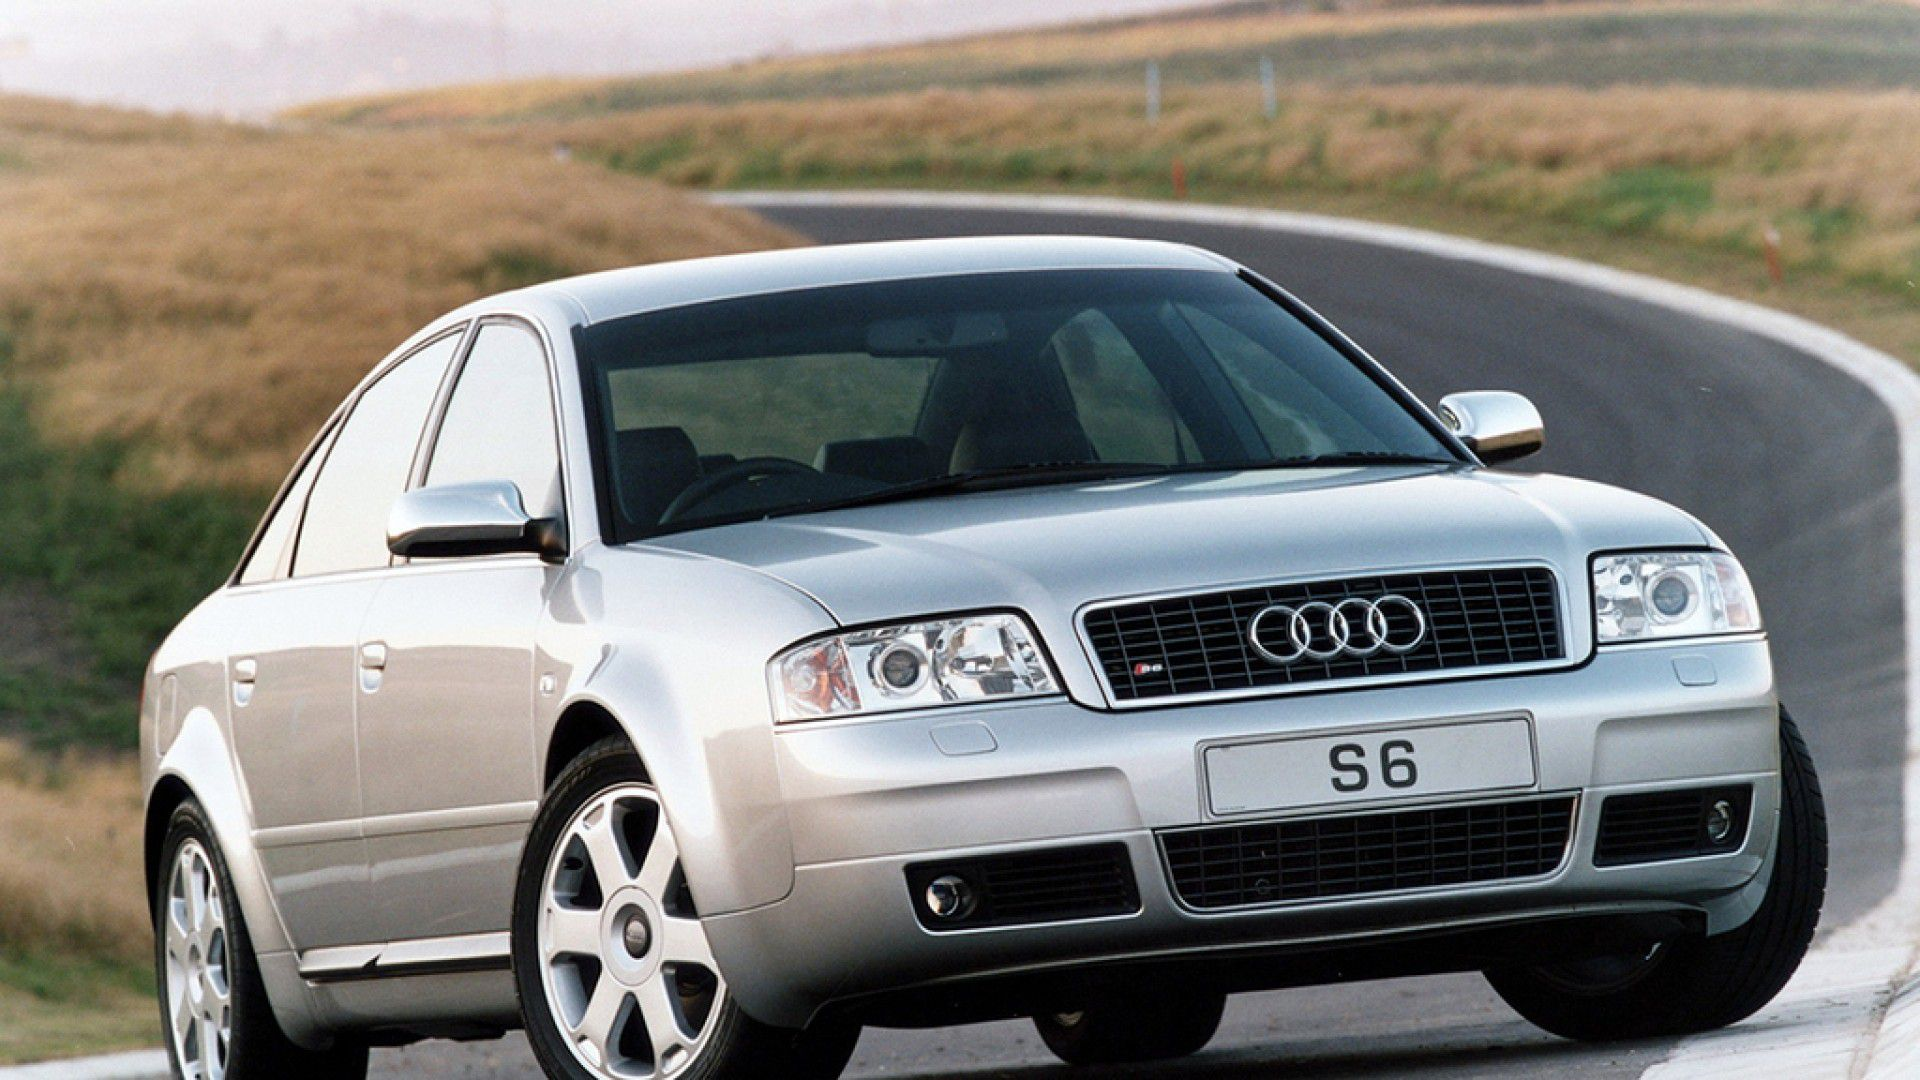 Audi S6 (1999 to 2004)